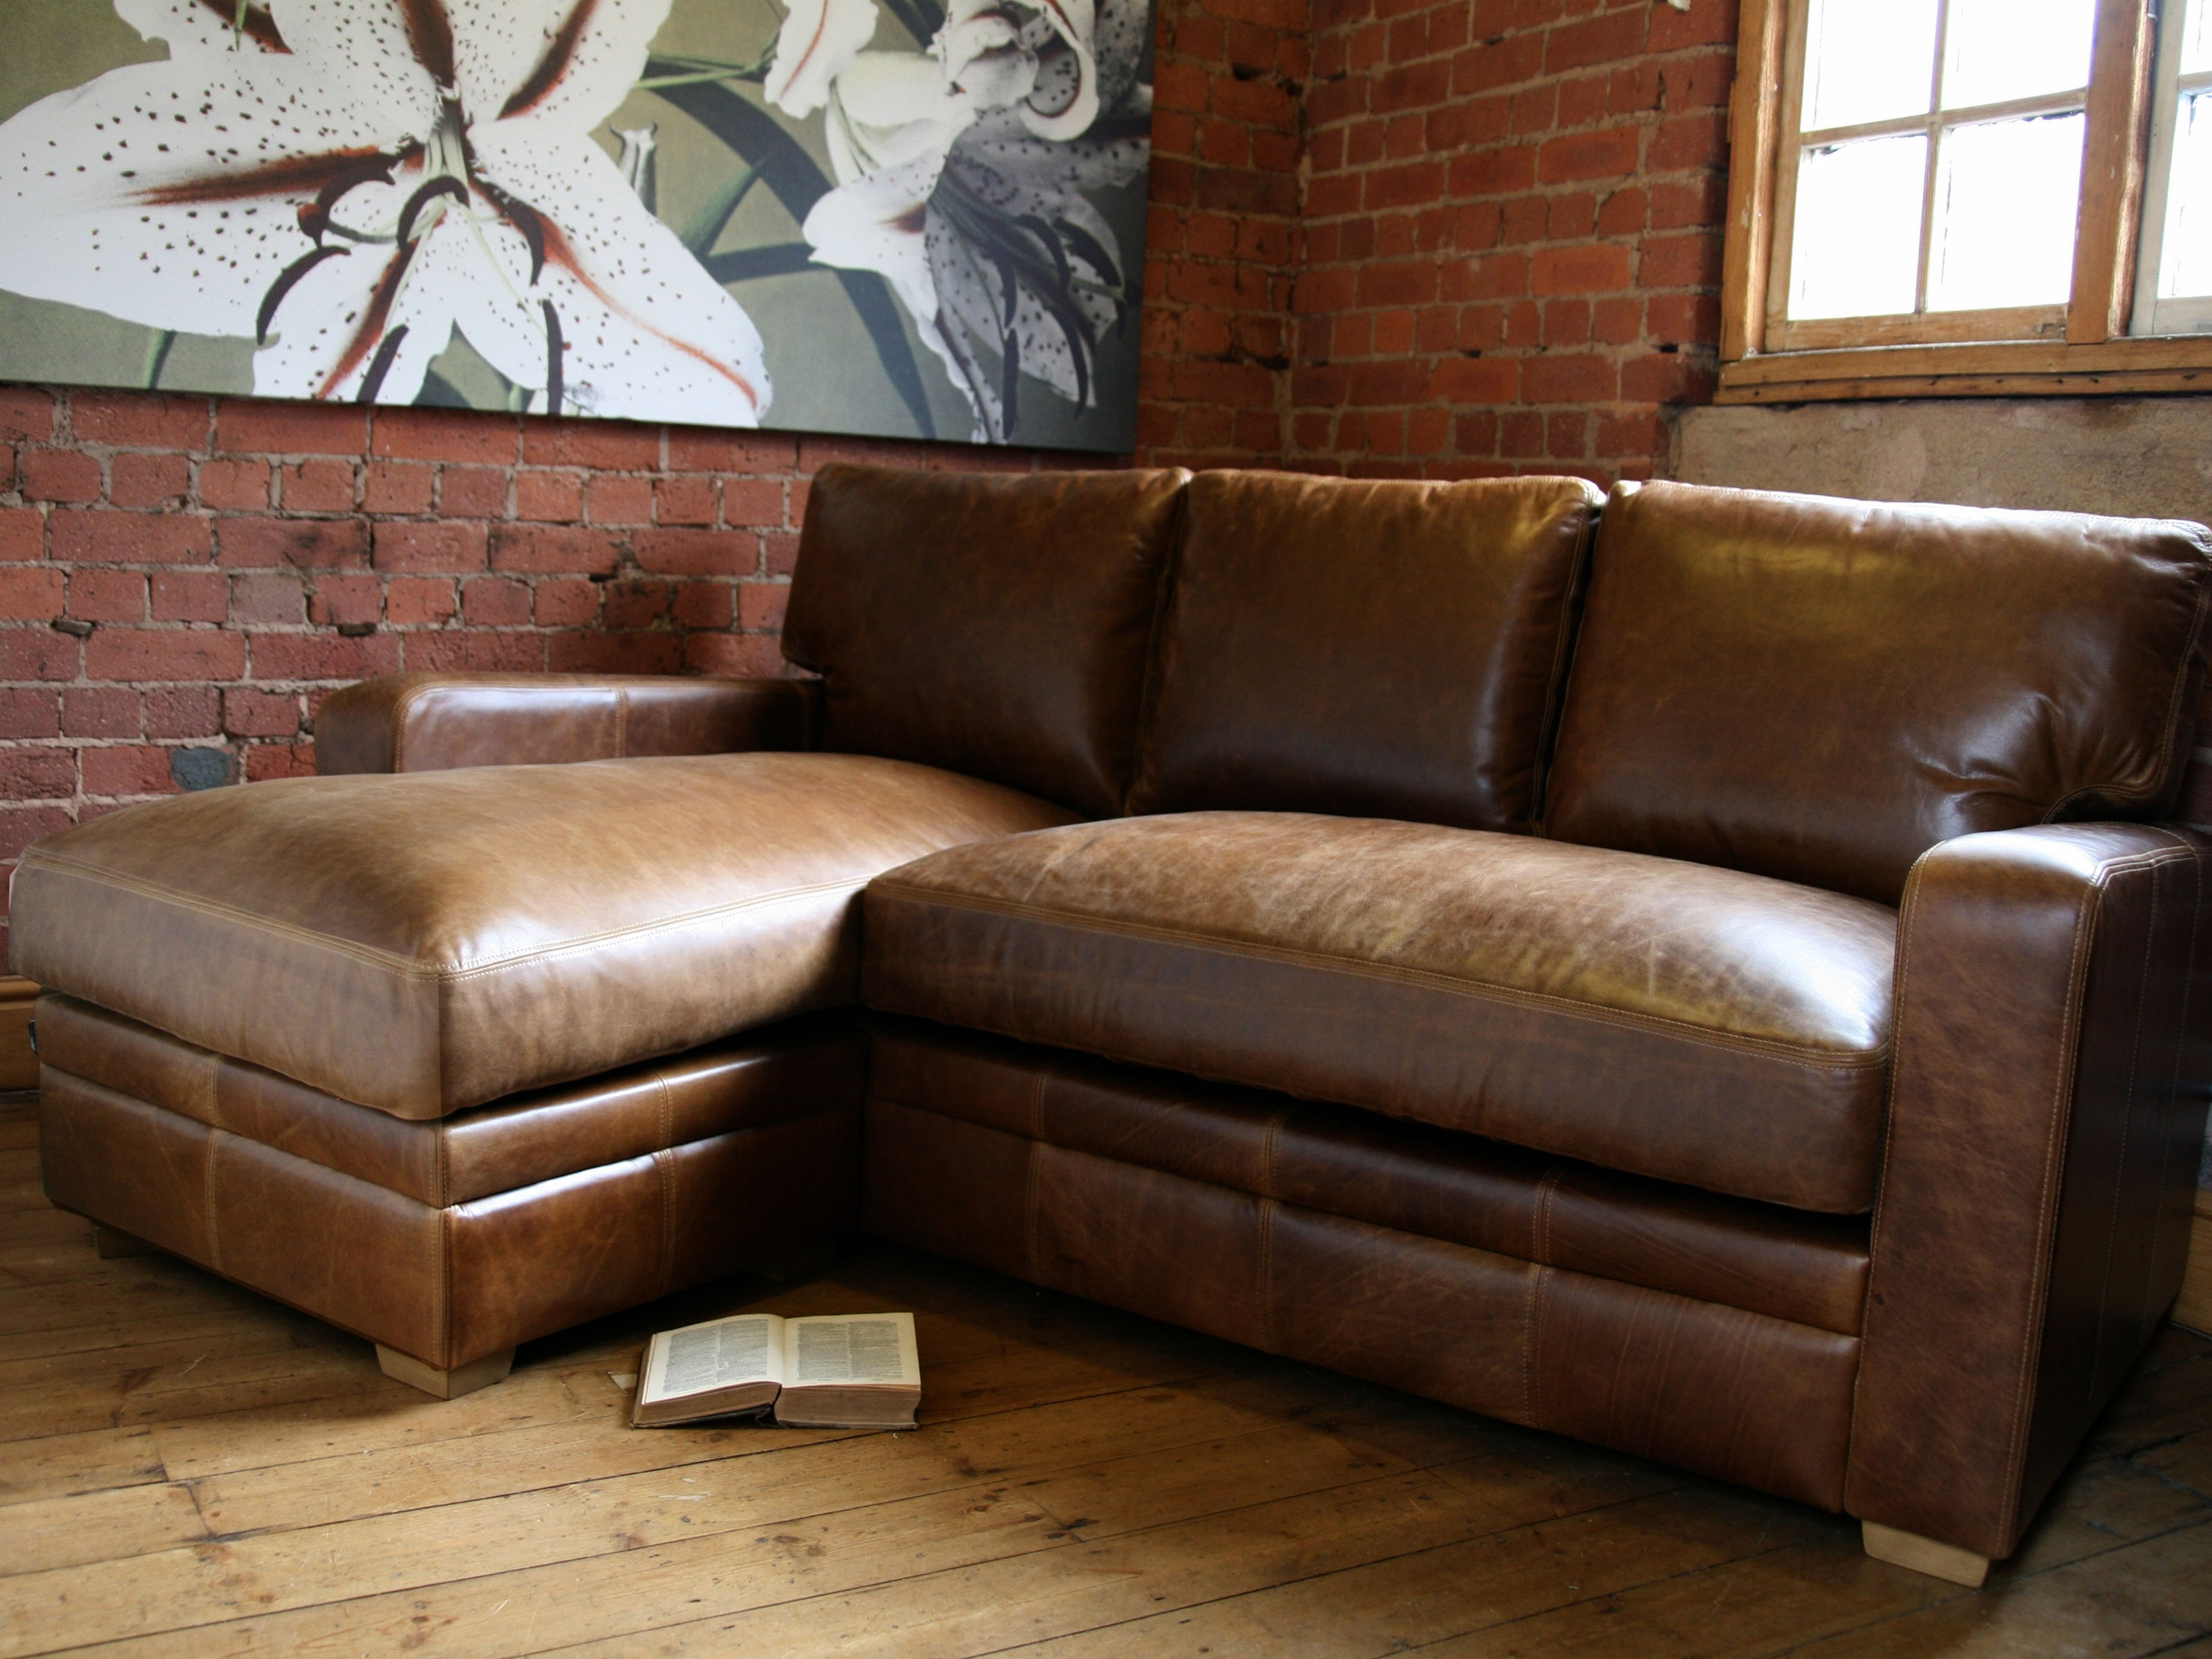 Leather L Shaped Sectional Sofas Intended For Well Liked Sofa : Chaise Sofa Double Chaise Sectional Leather Apartment Size (View 8 of 15)